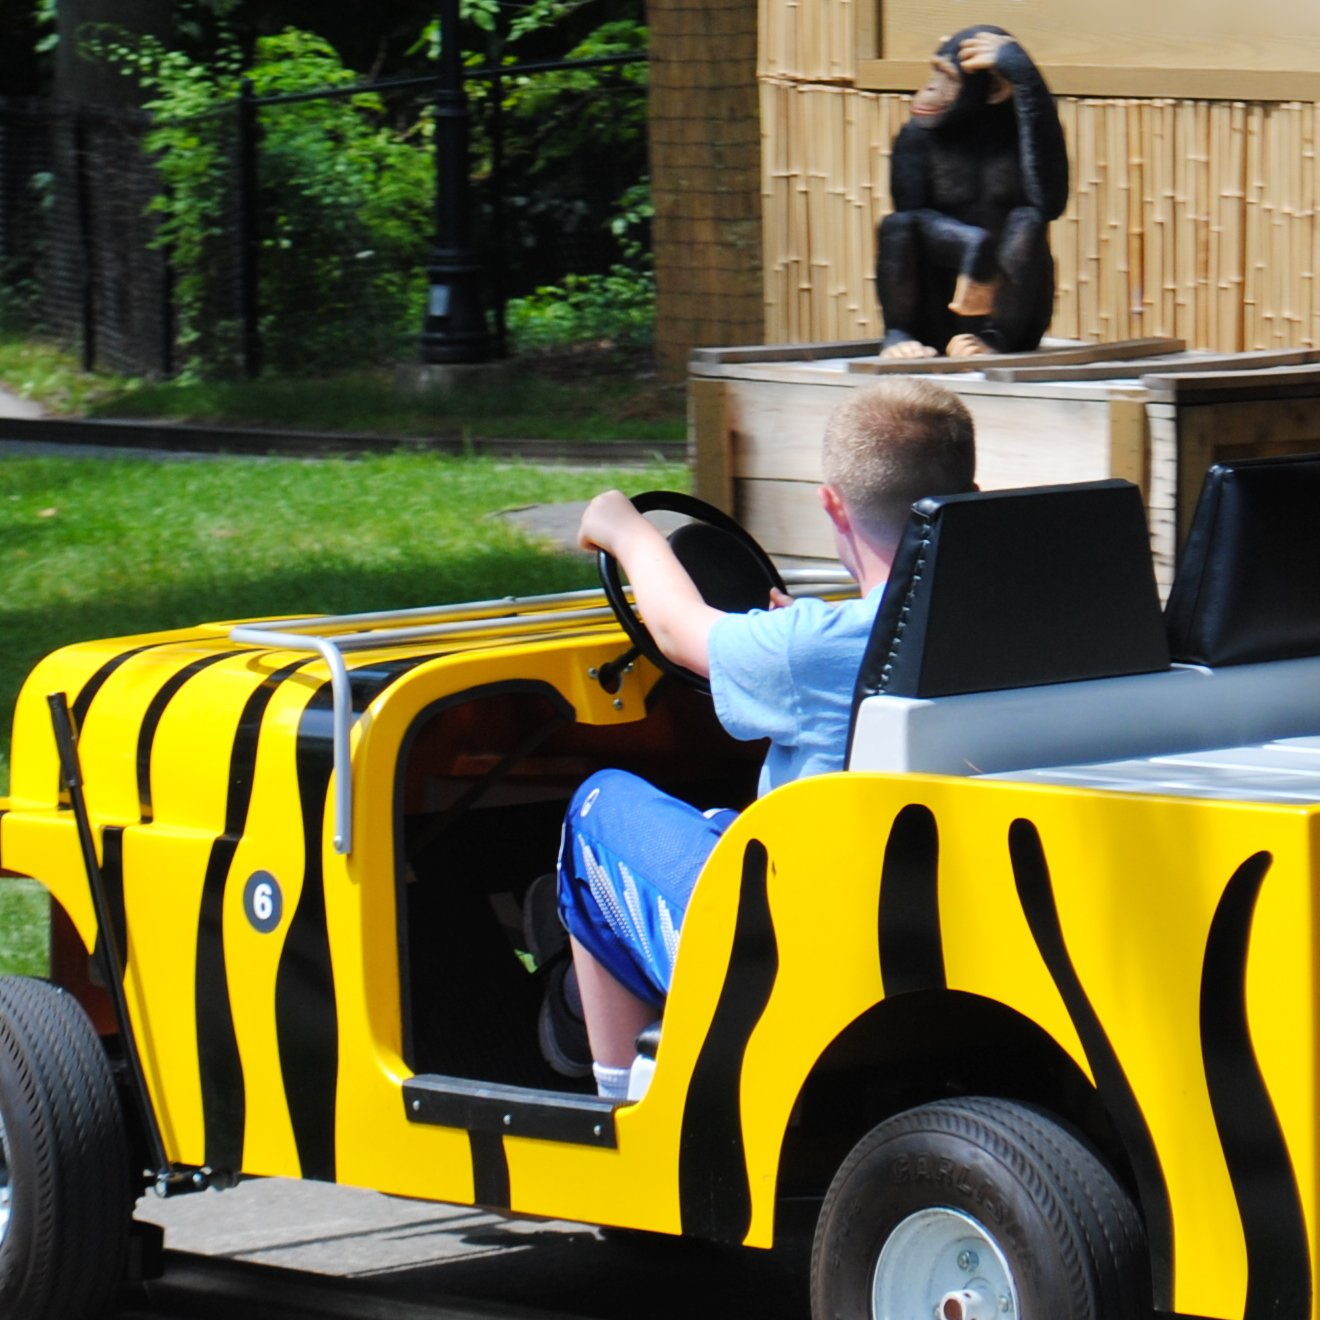 Kids riding in miniature jeeps.